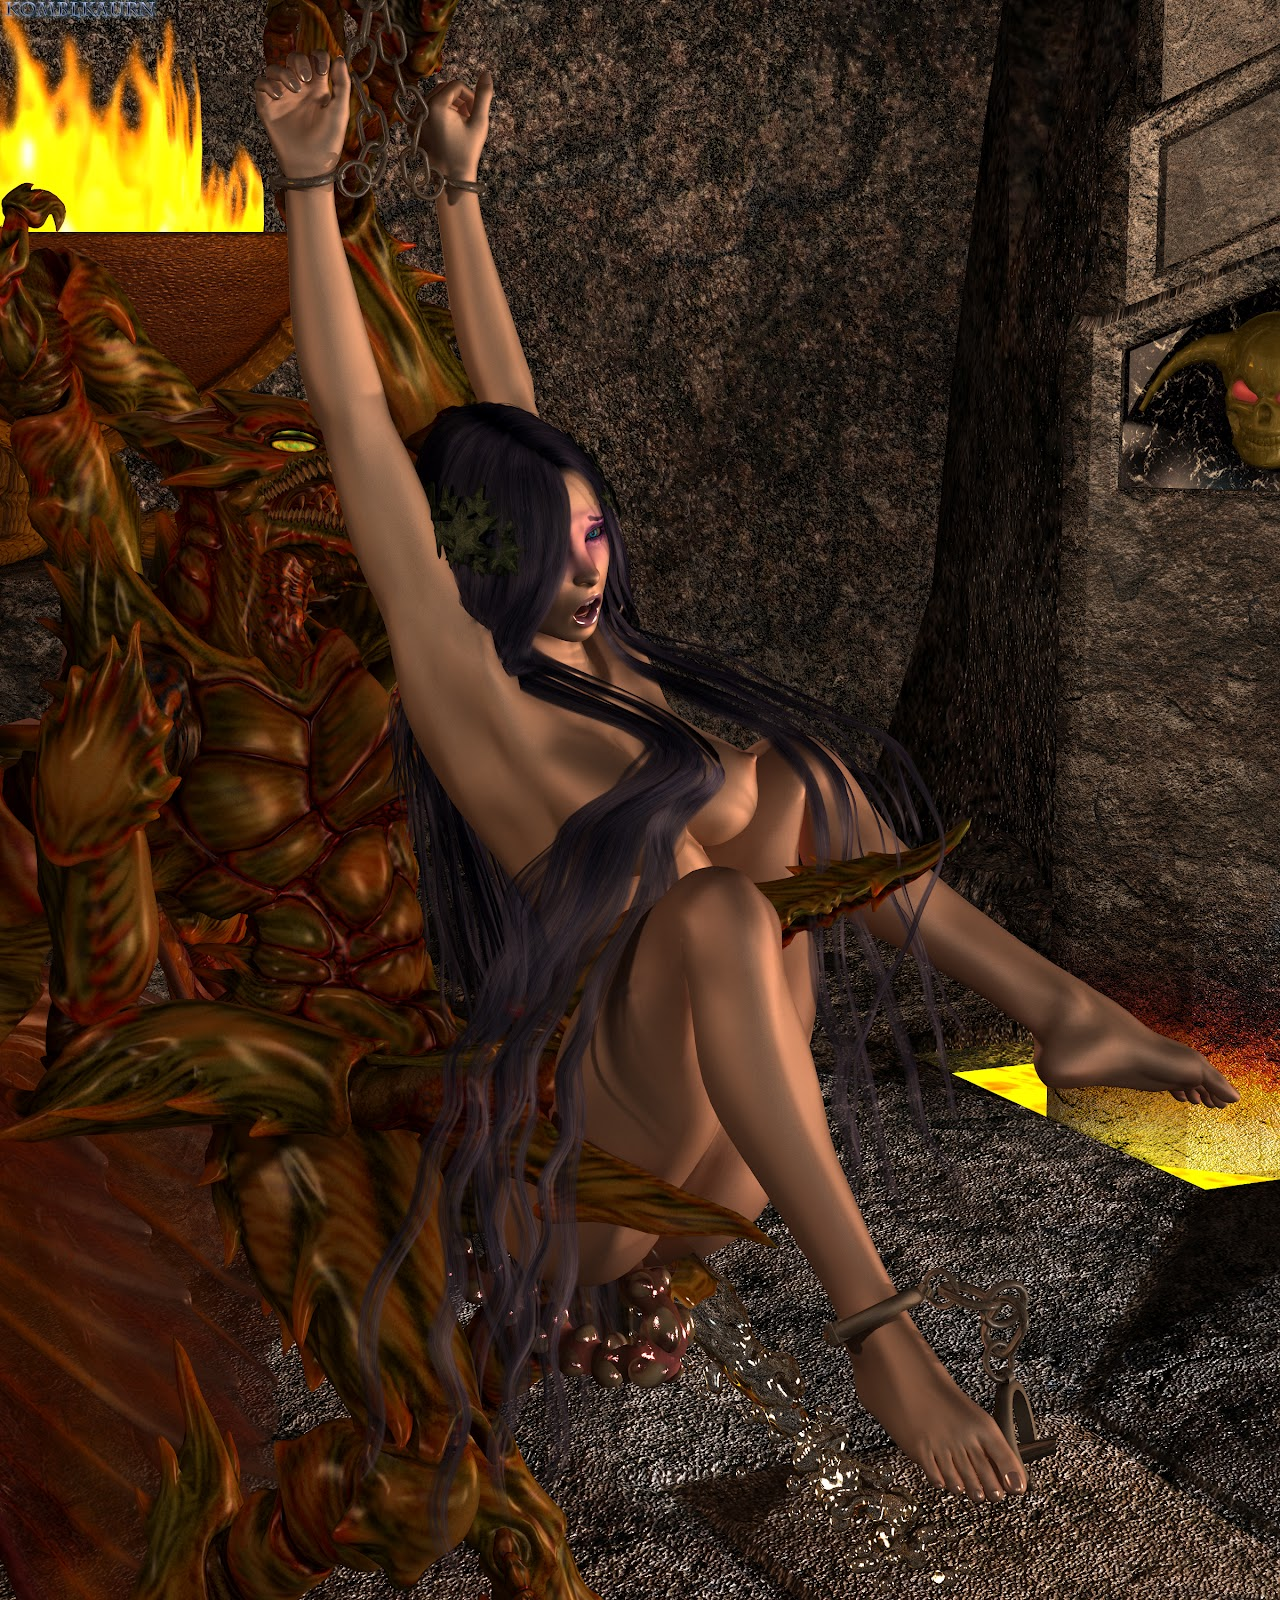 Neverwinter nights nude skins adult photo